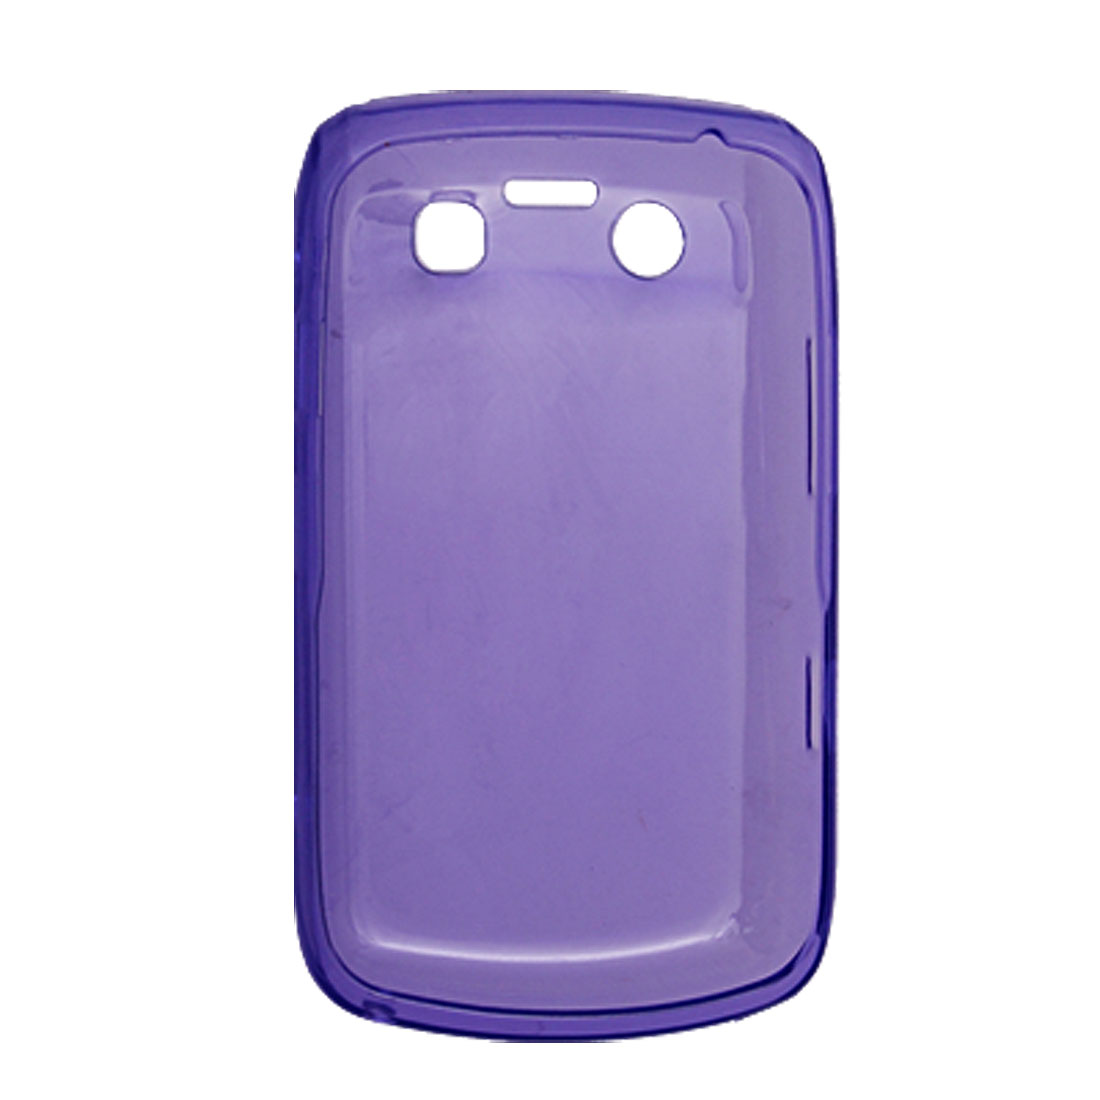 Purple Phone Soft Plastic Case Shell for BlackBerry 9700